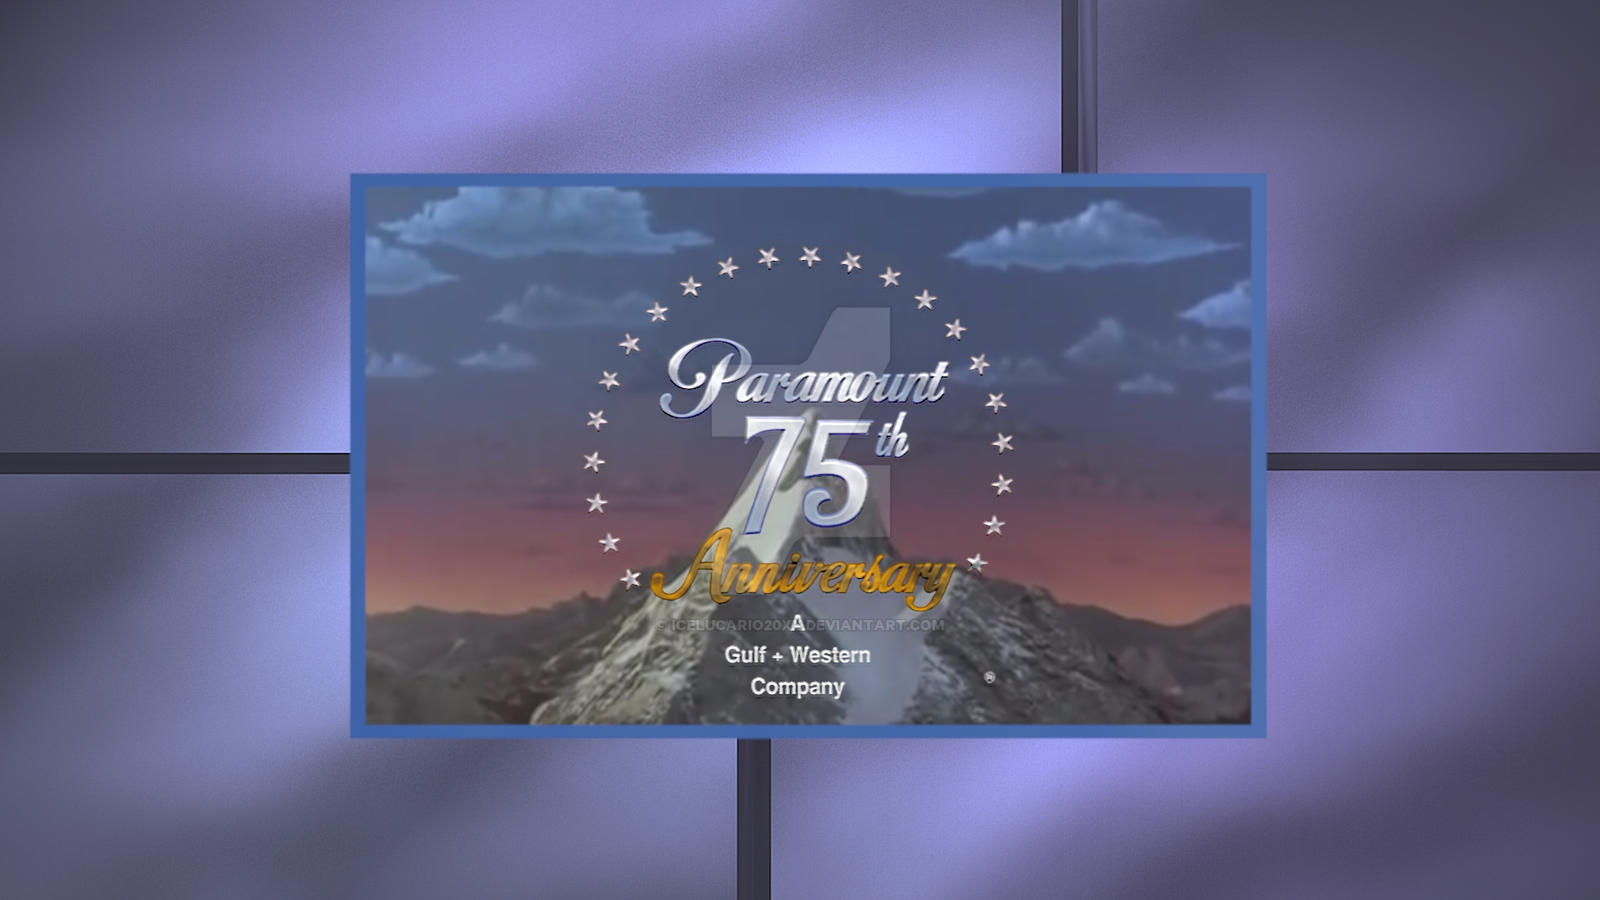 paramount intro sample by icepony on paramount 75th anniversary feature presentation by icepony64